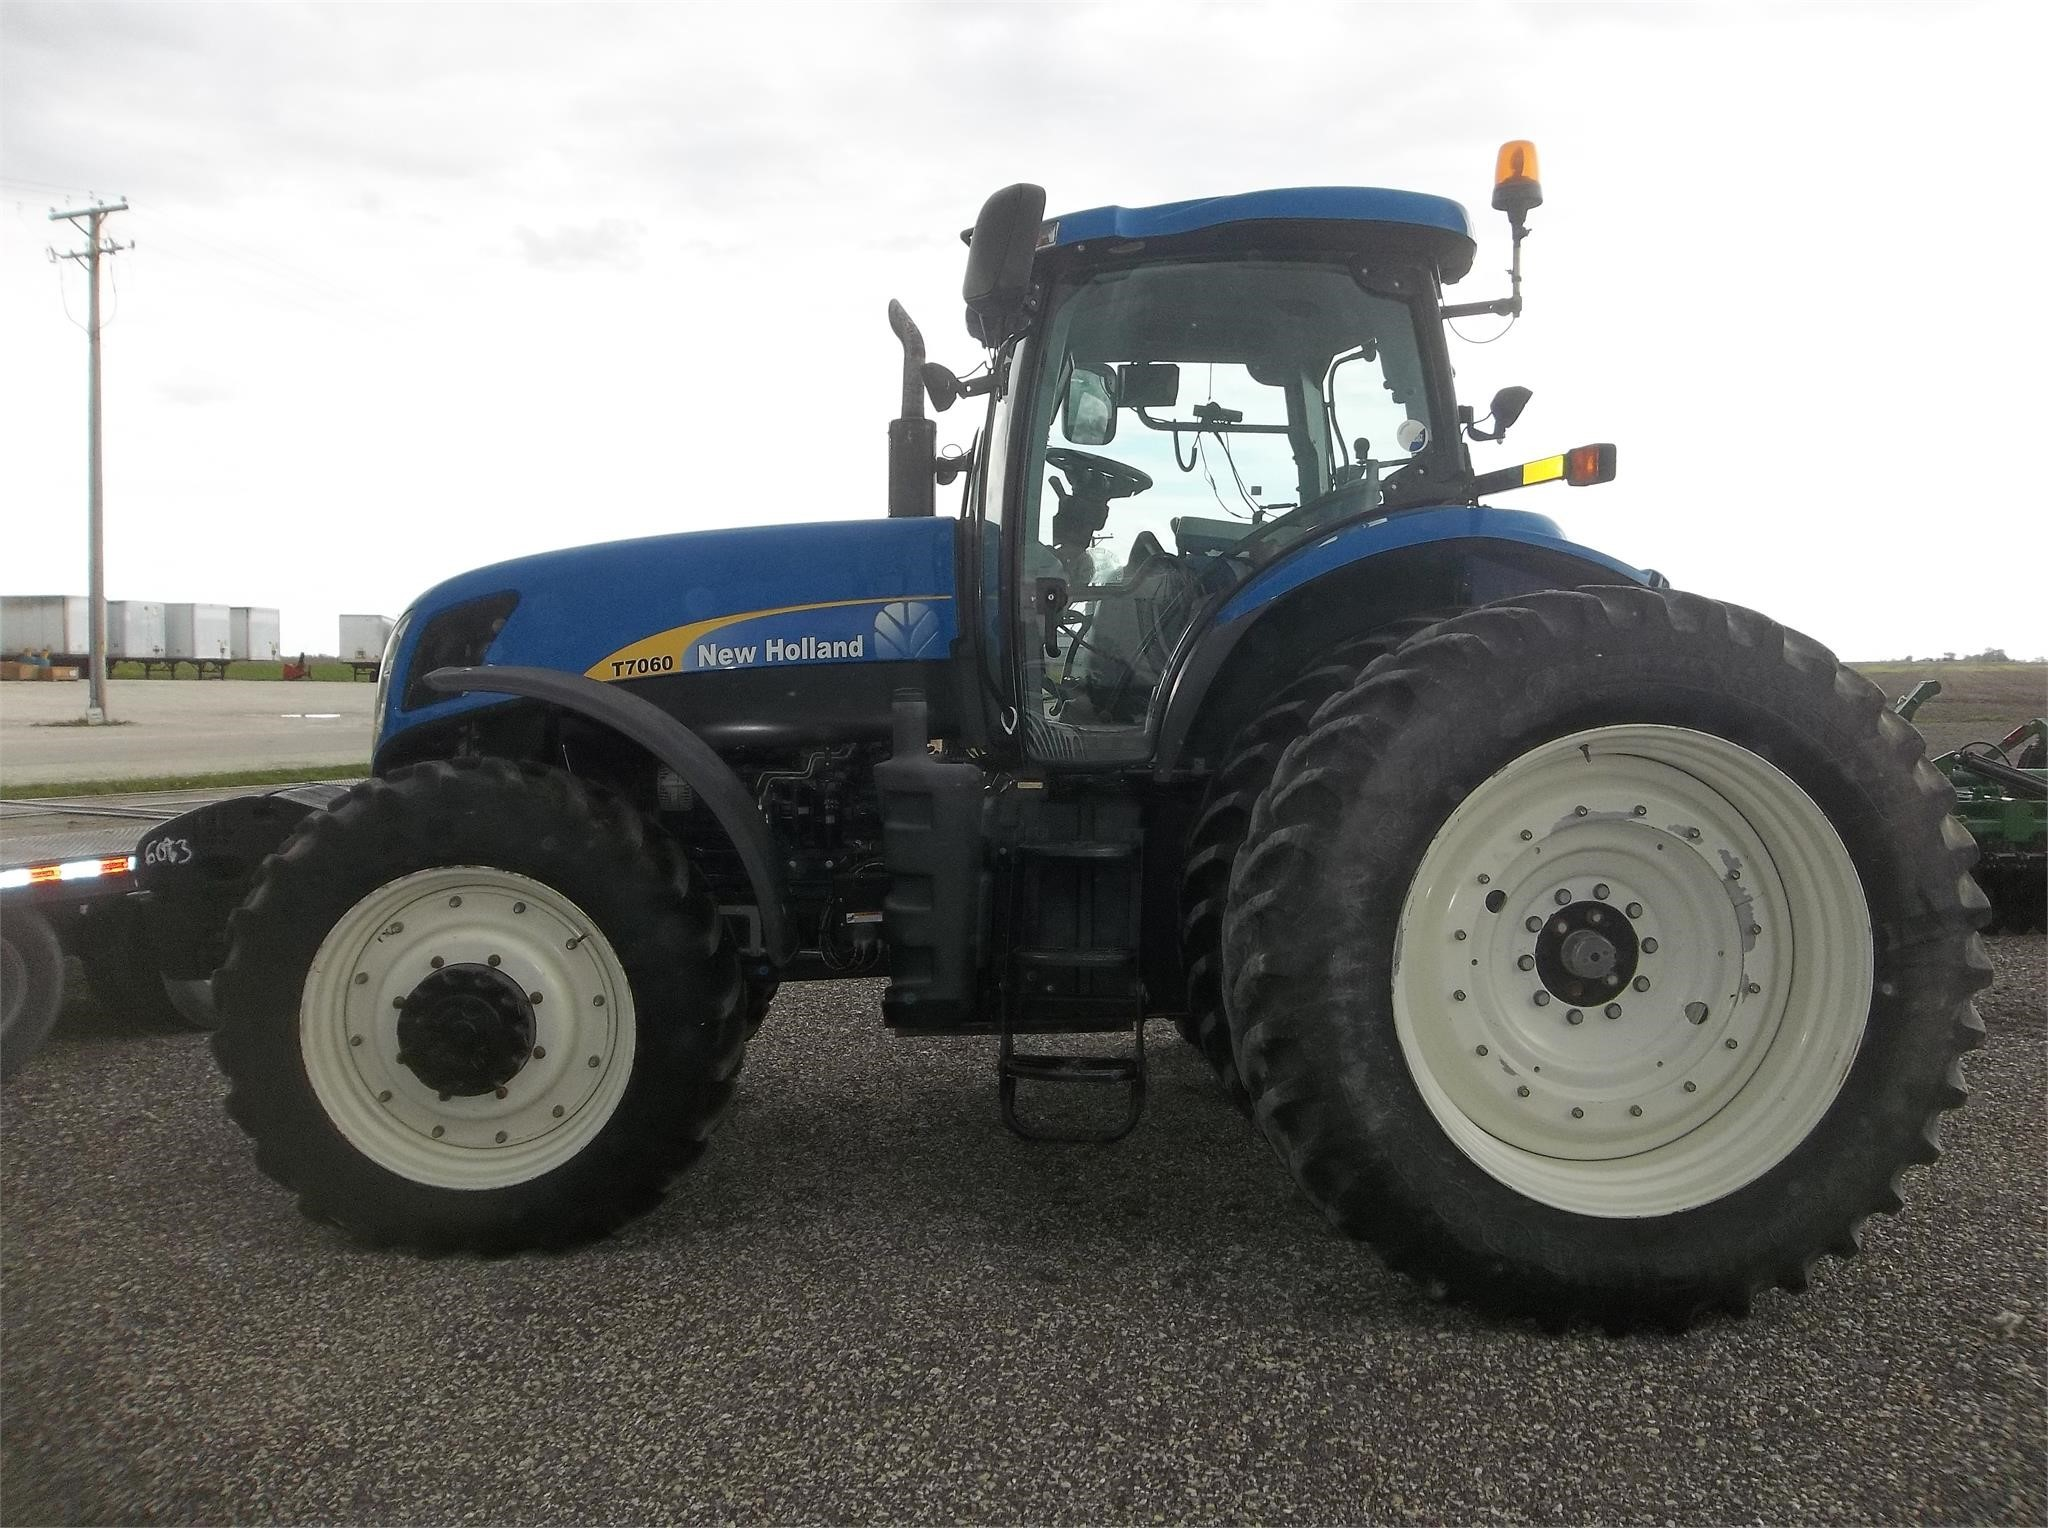 2009 New Holland T7060 Tractor